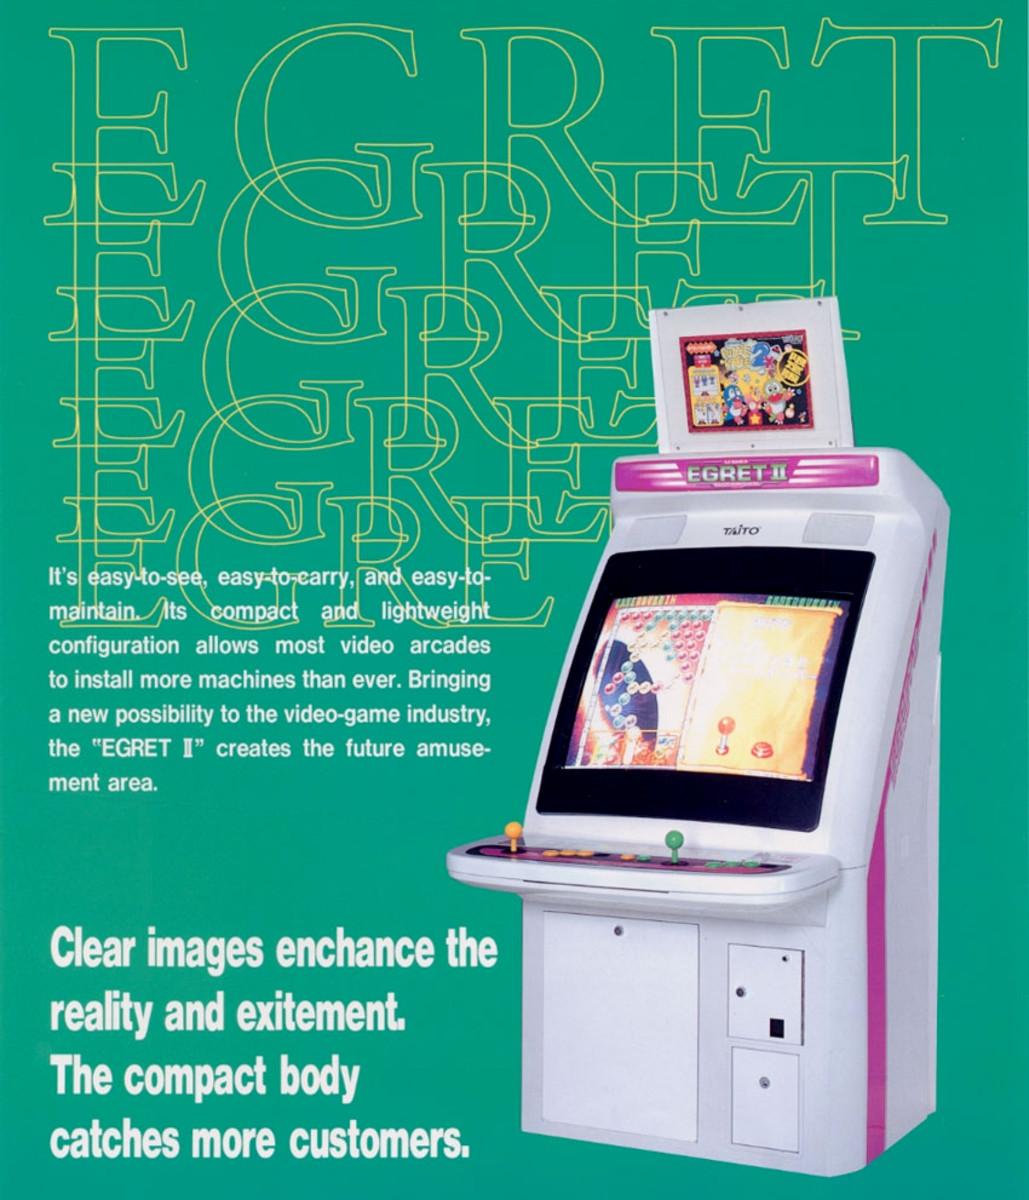 Flyer for Egret II (1996), a popular candy cab model by Taito.